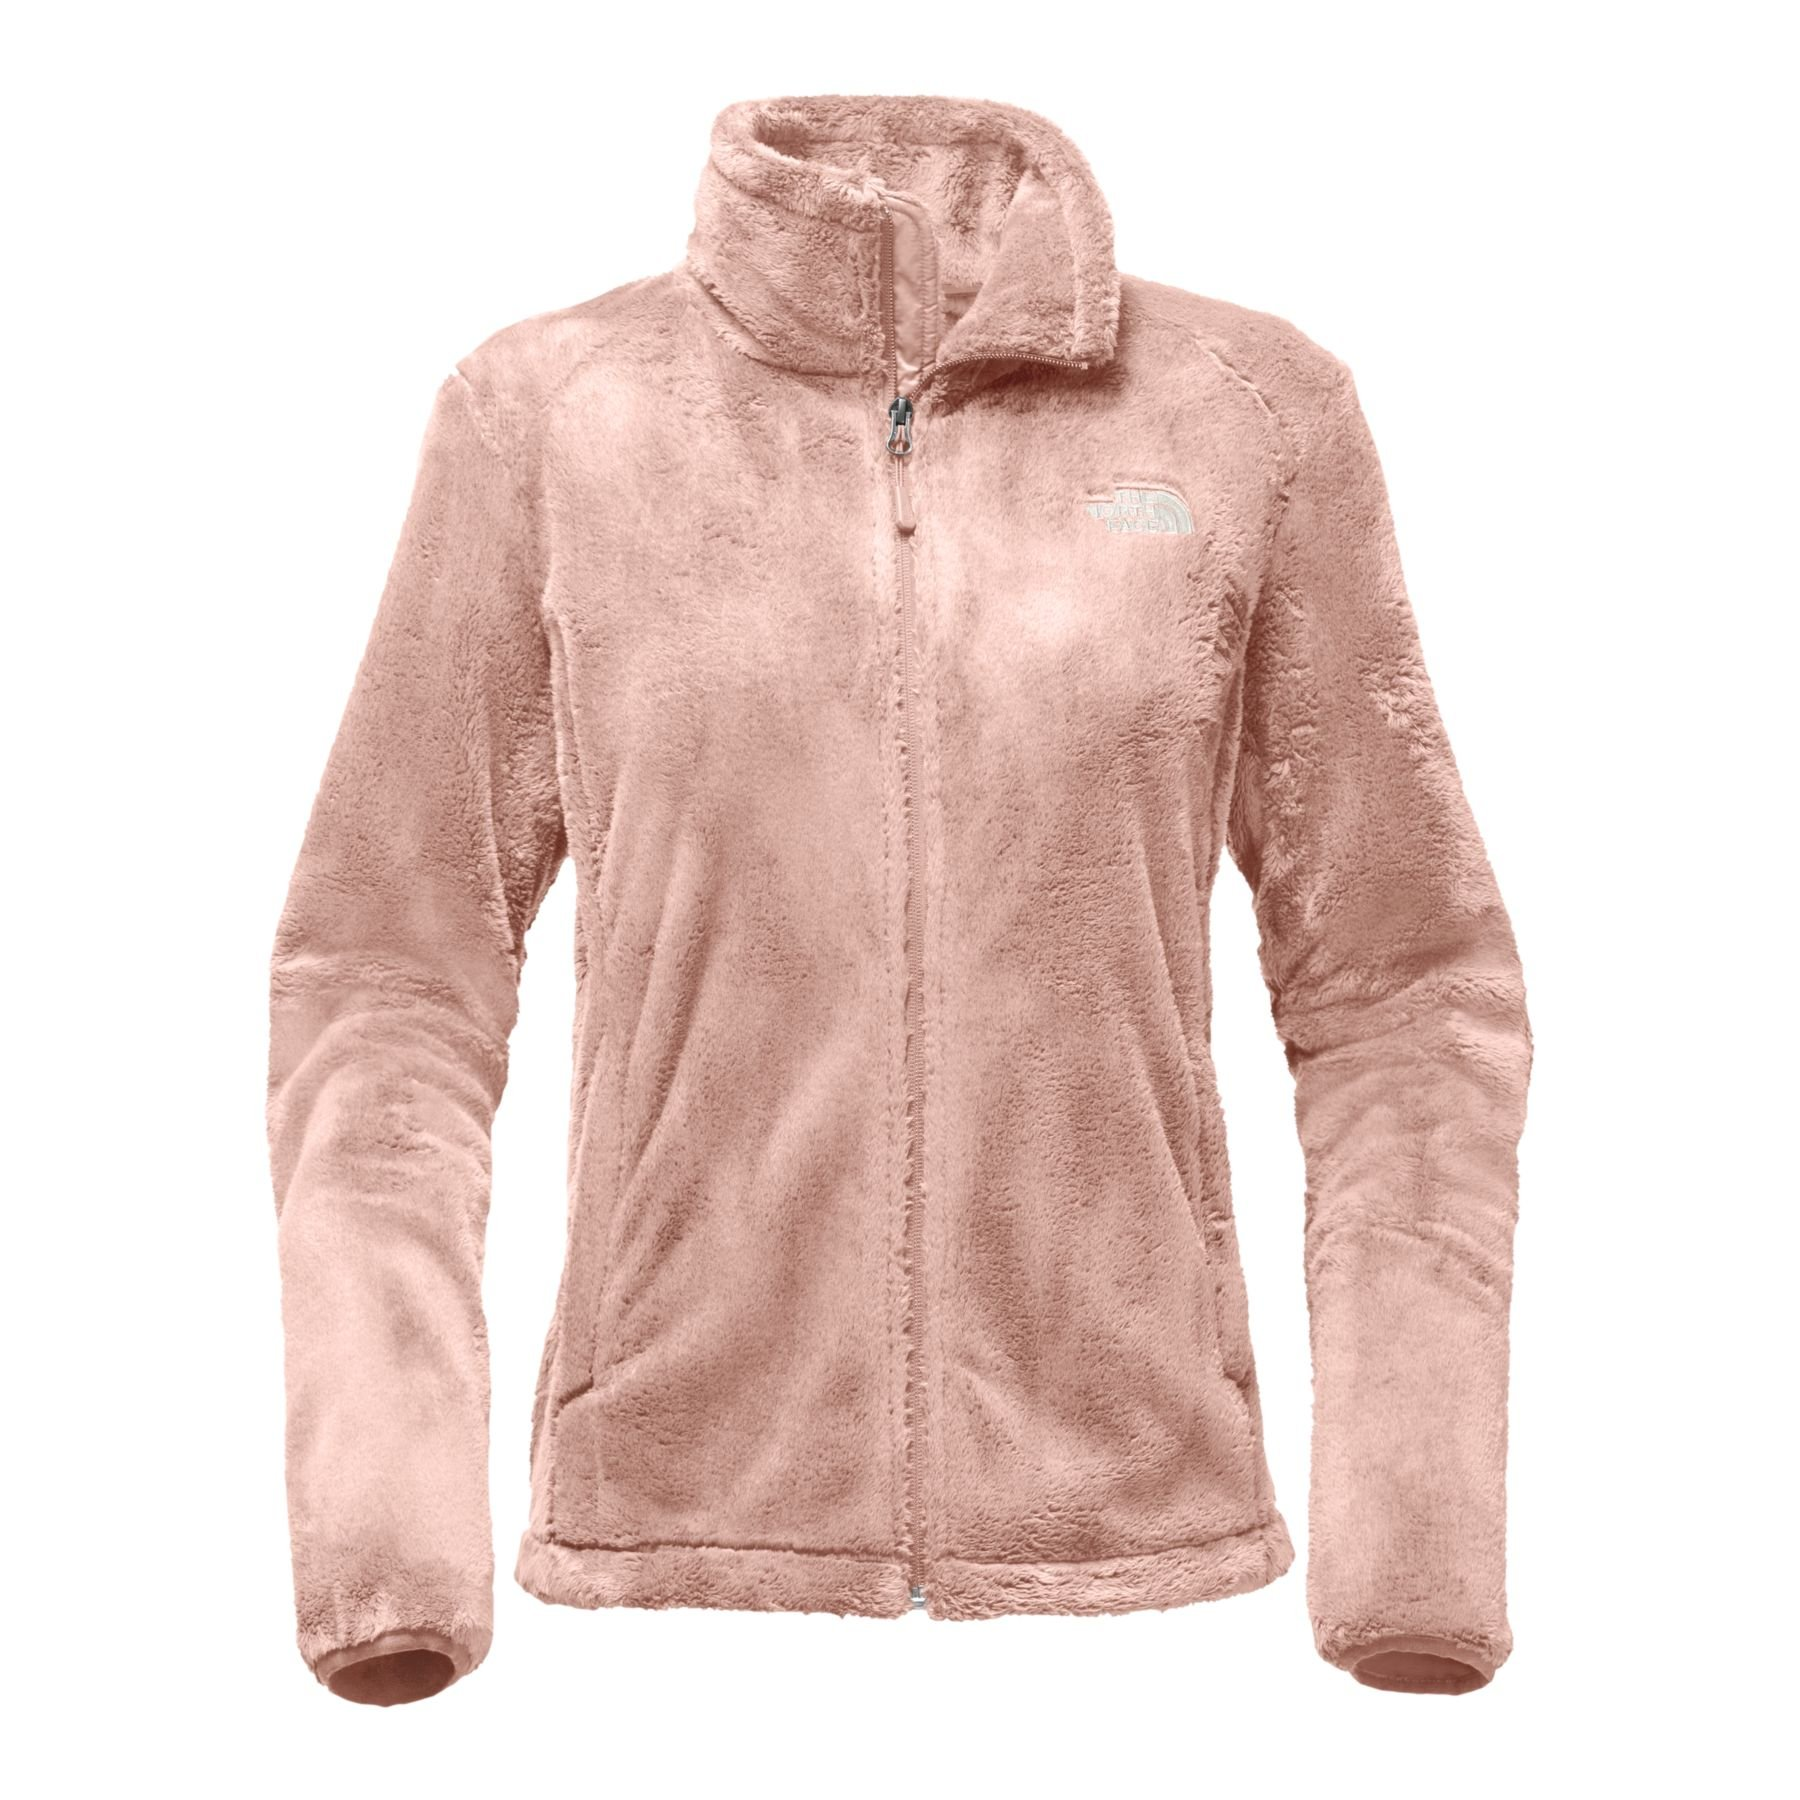 The North Face Women's Osito 2 Jacket - Evening Sand Pink - S by The North Face